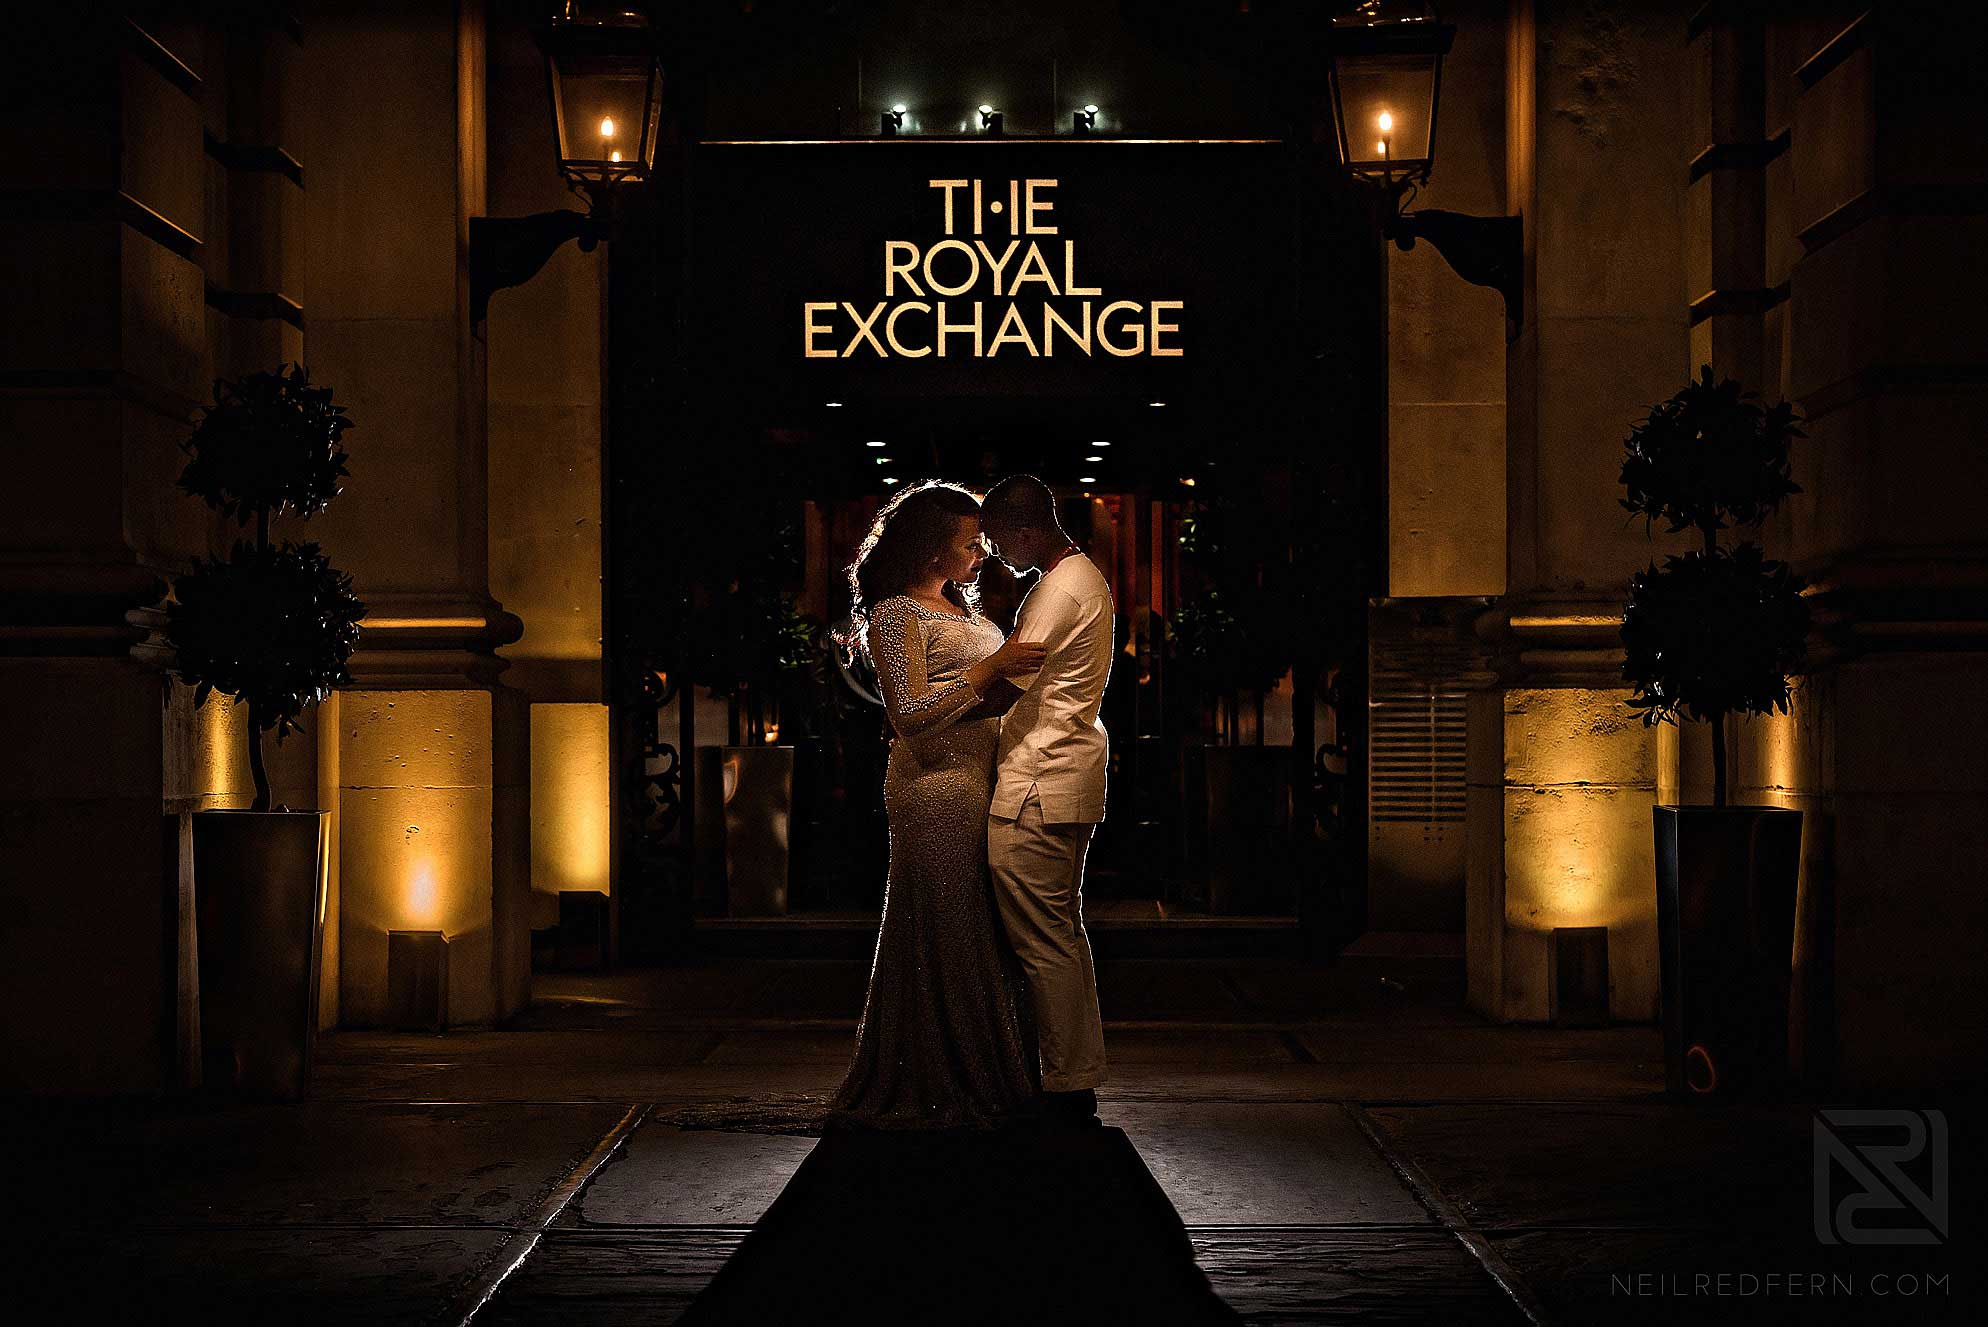 night time photograph of bride and groom outside The Royal Exchange London